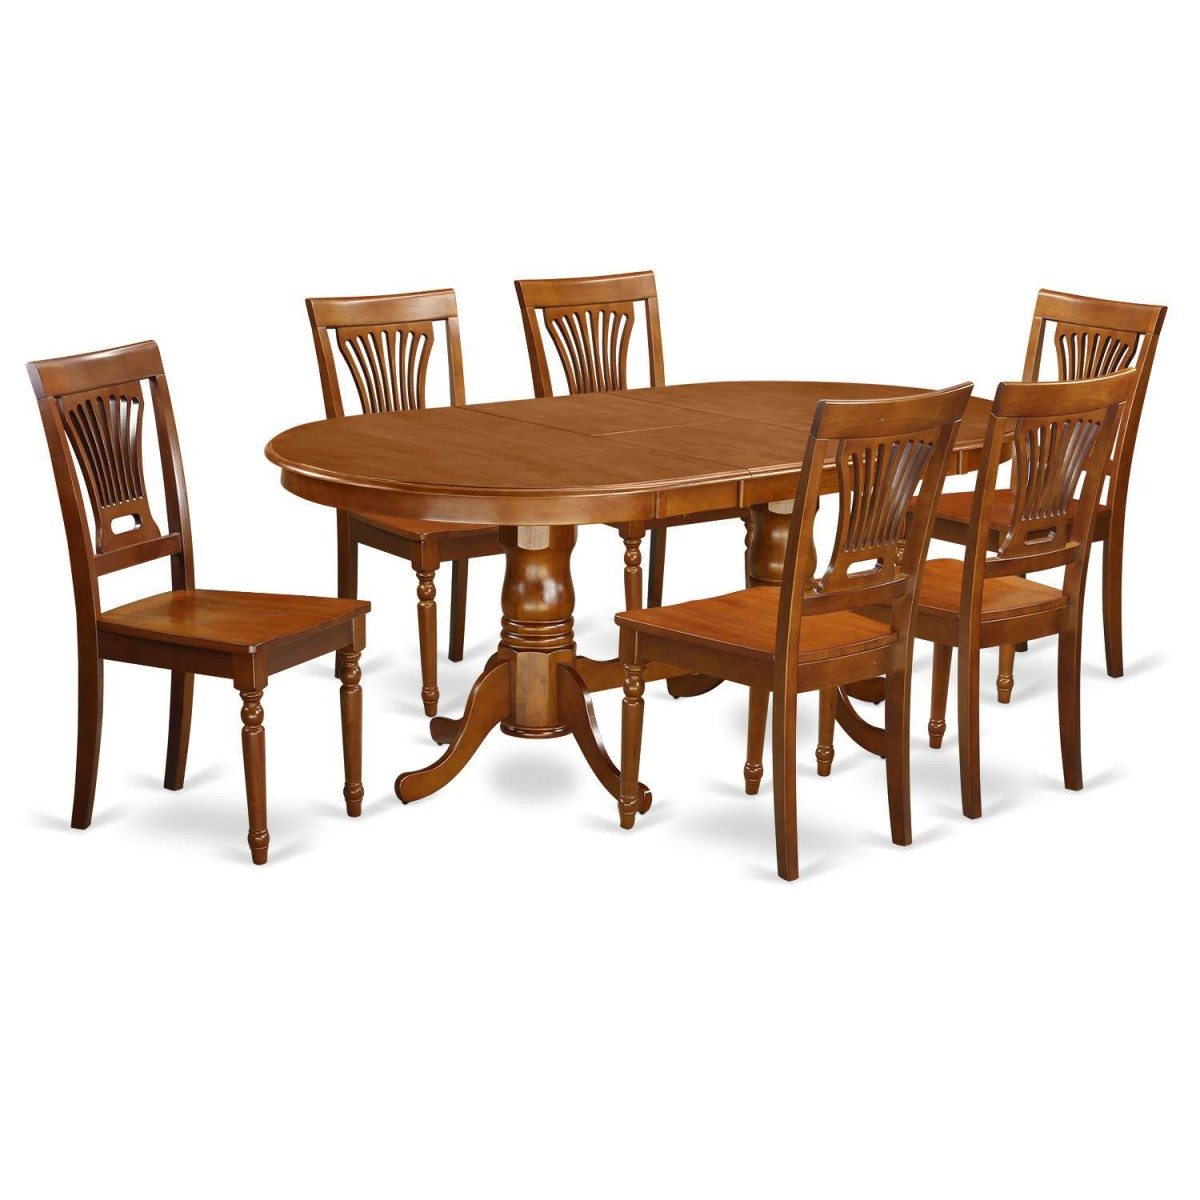 9 Piece Dining Table Set For 8 Dining Room Table With 8: East West Furniture Plainville 9 Piece Dining Room Set